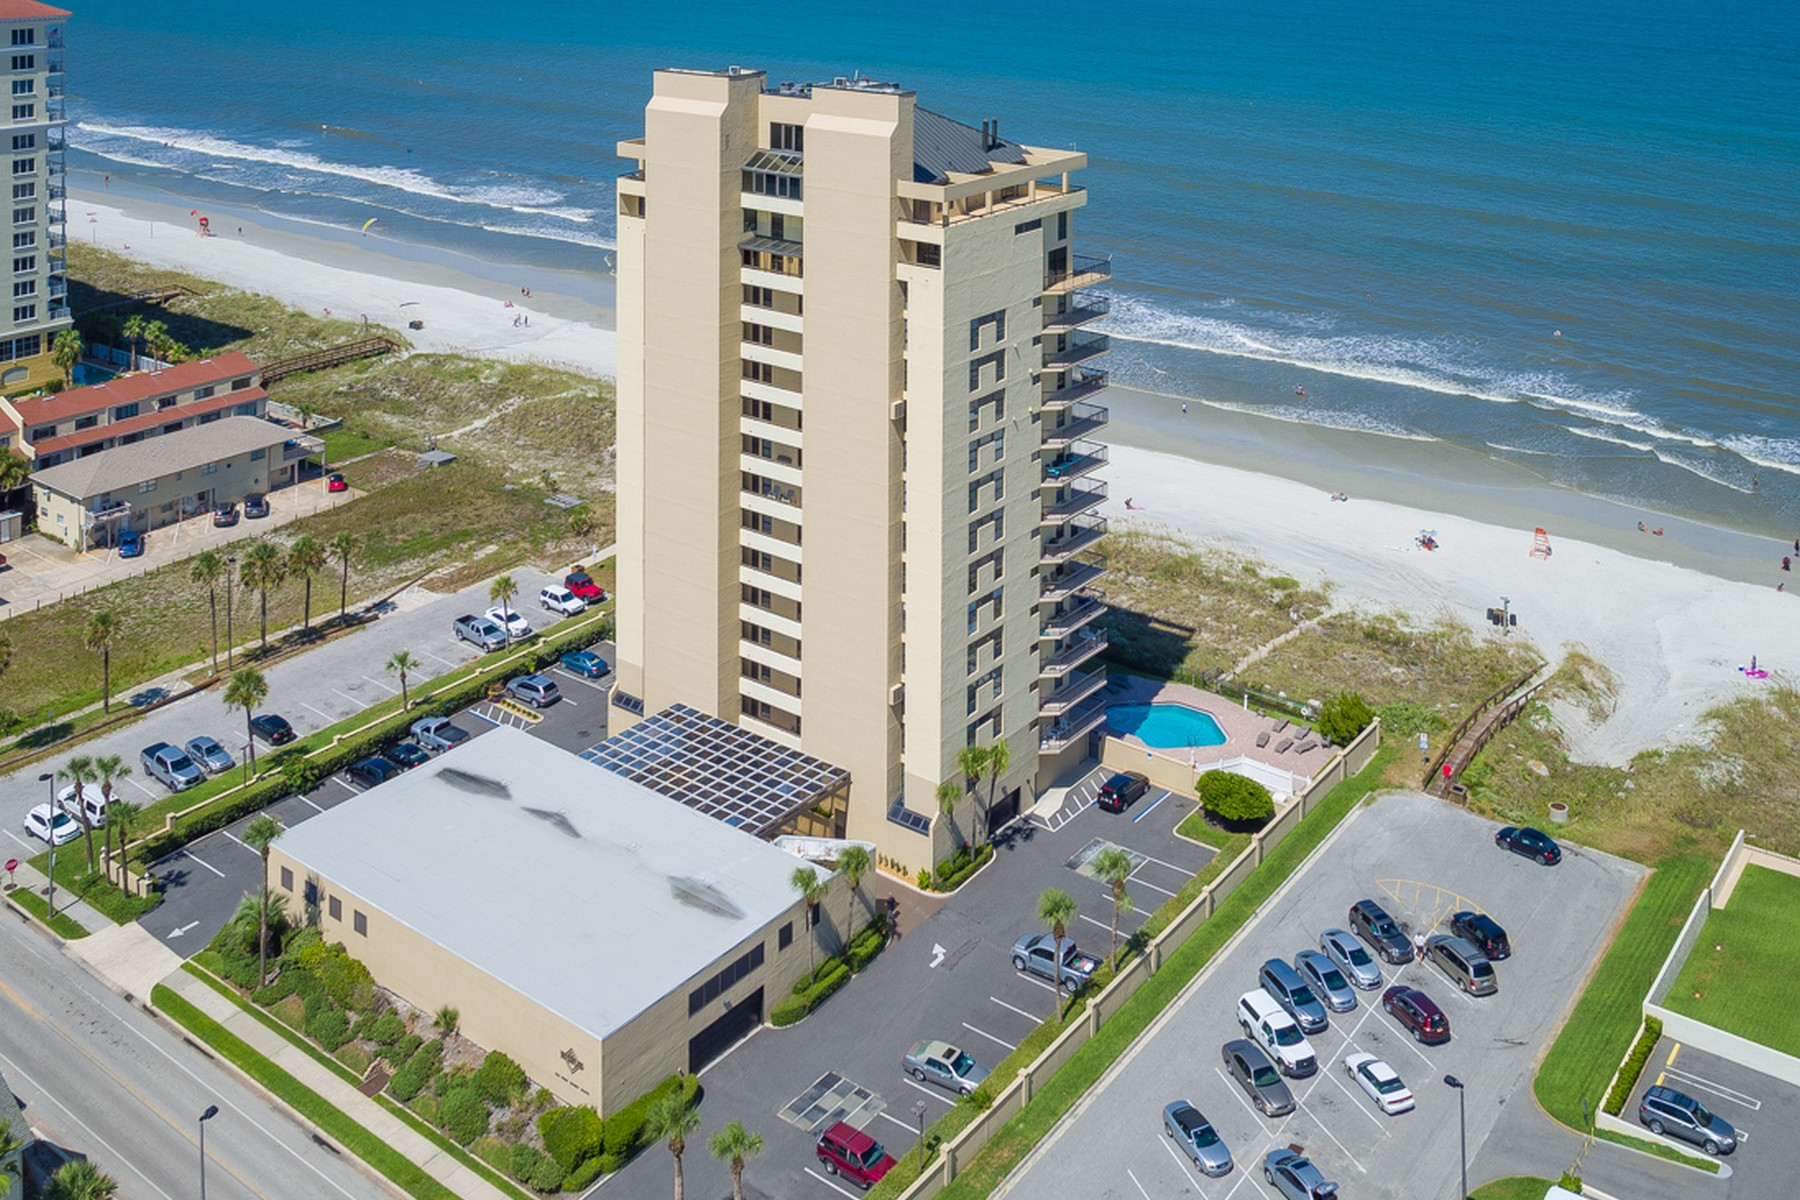 Condominium for Sale at The Waterford Condominium 1221 1st Street S. #IC Jacksonville Beach, Florida, 32250 United States